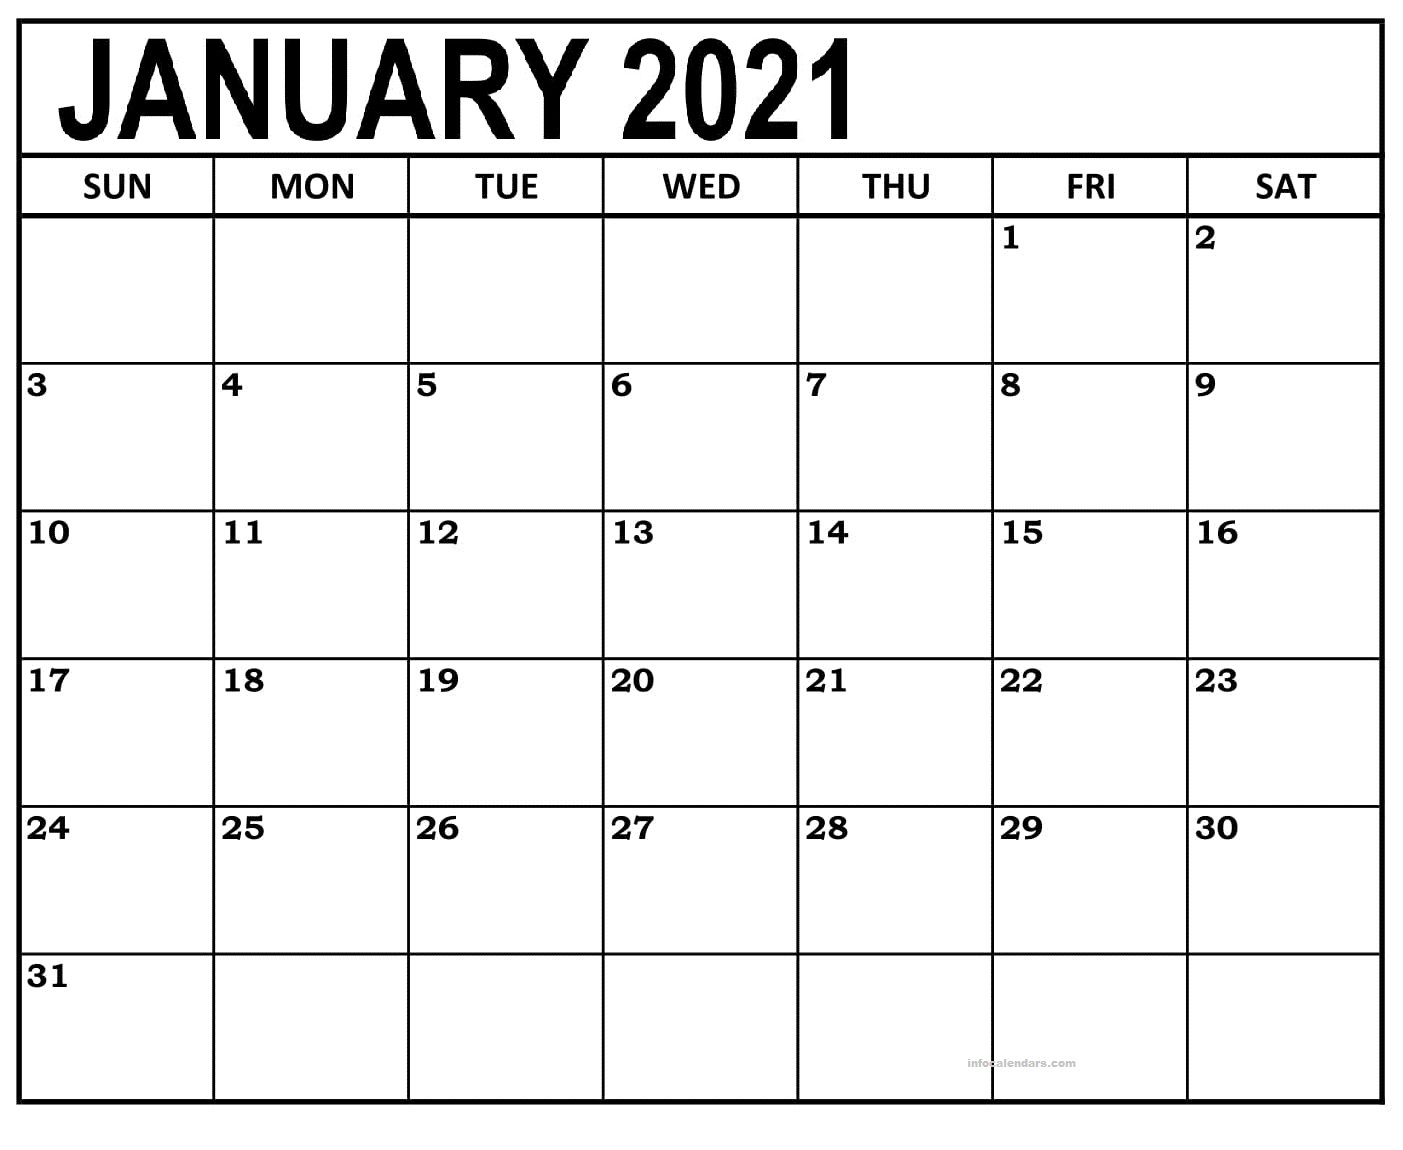 January 2021 Calendar With Holidays Sheet